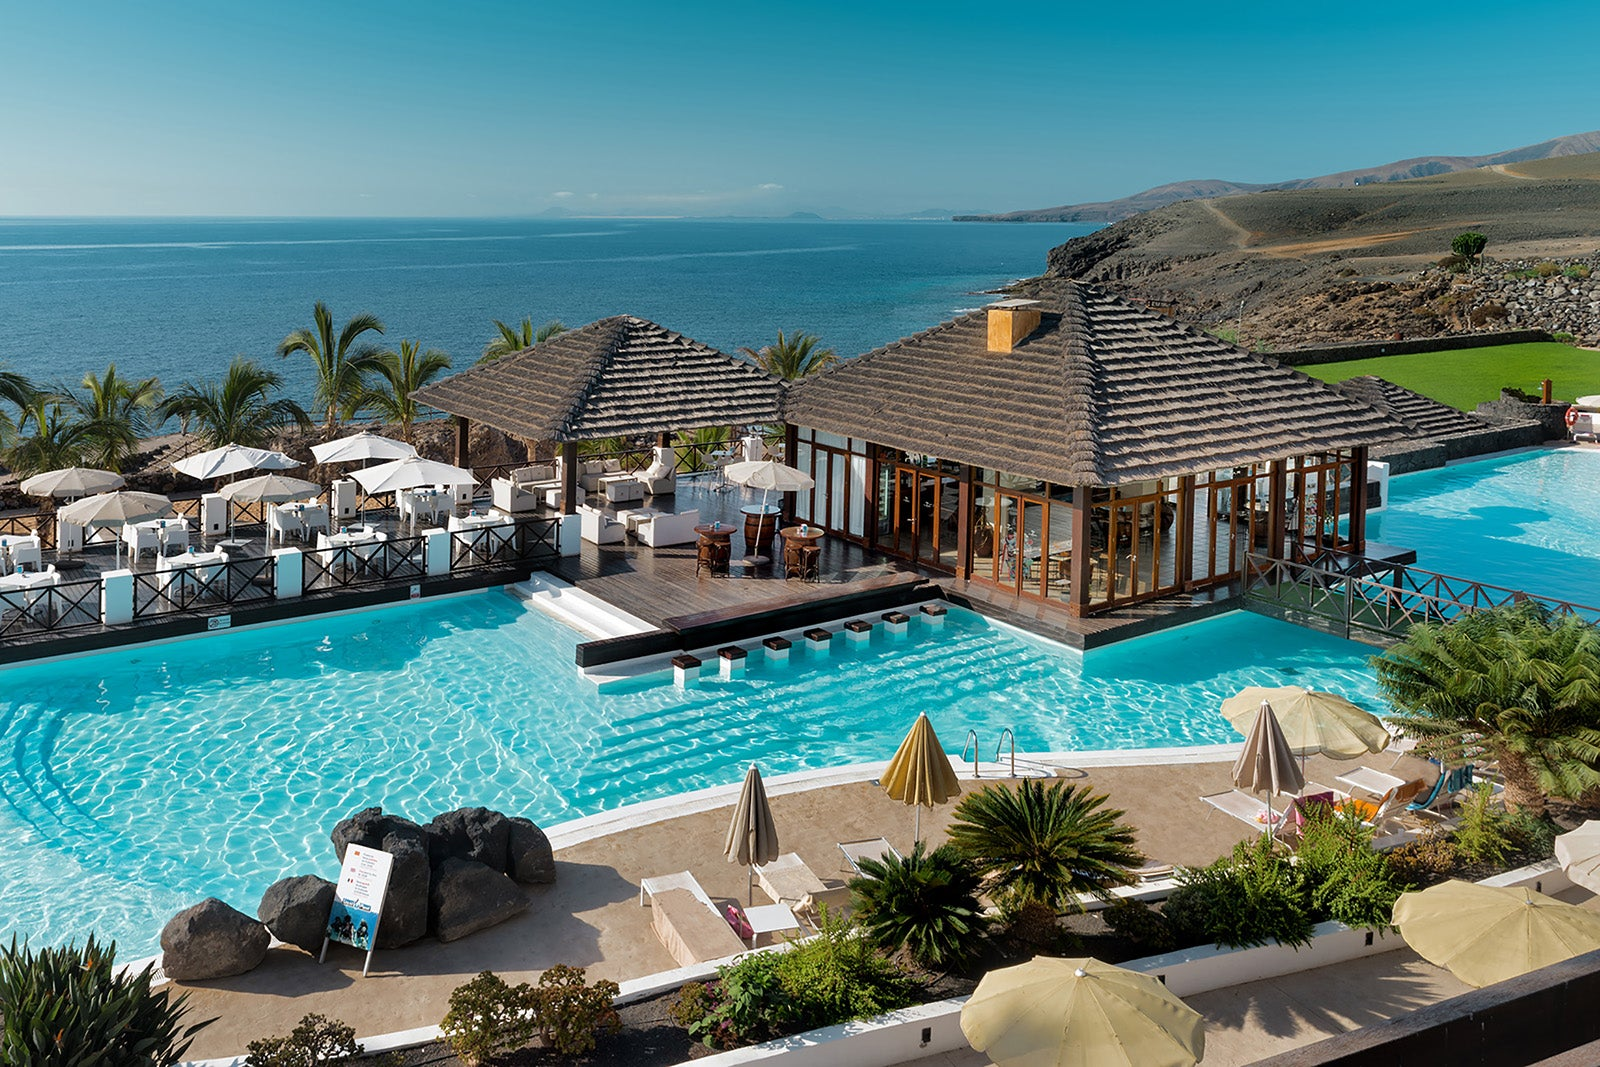 The TPG take: The 10 all-inclusive resorts we can't wait for Hyatt to add to its portfolio